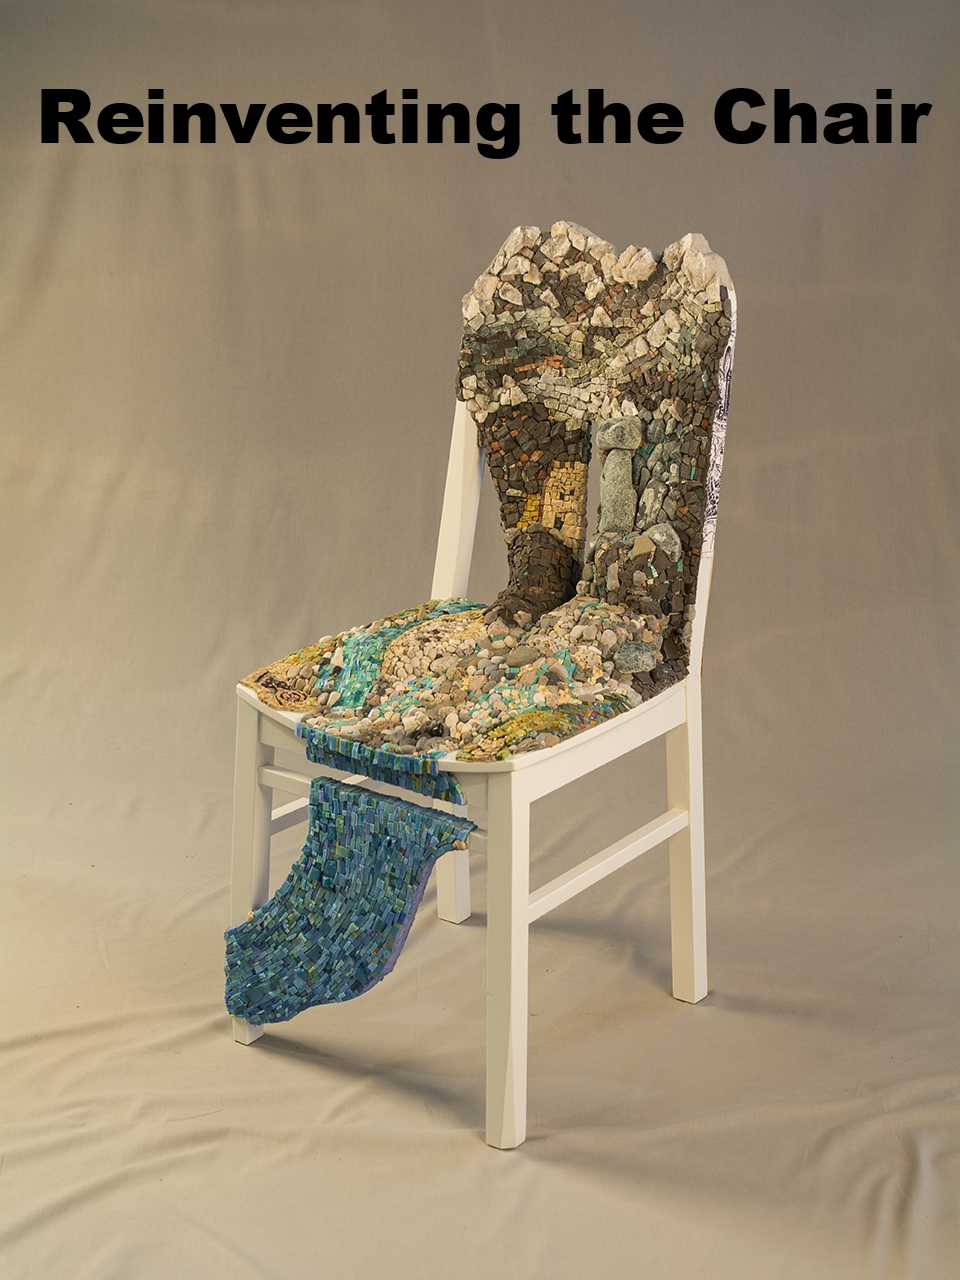 Reinventing the Chair